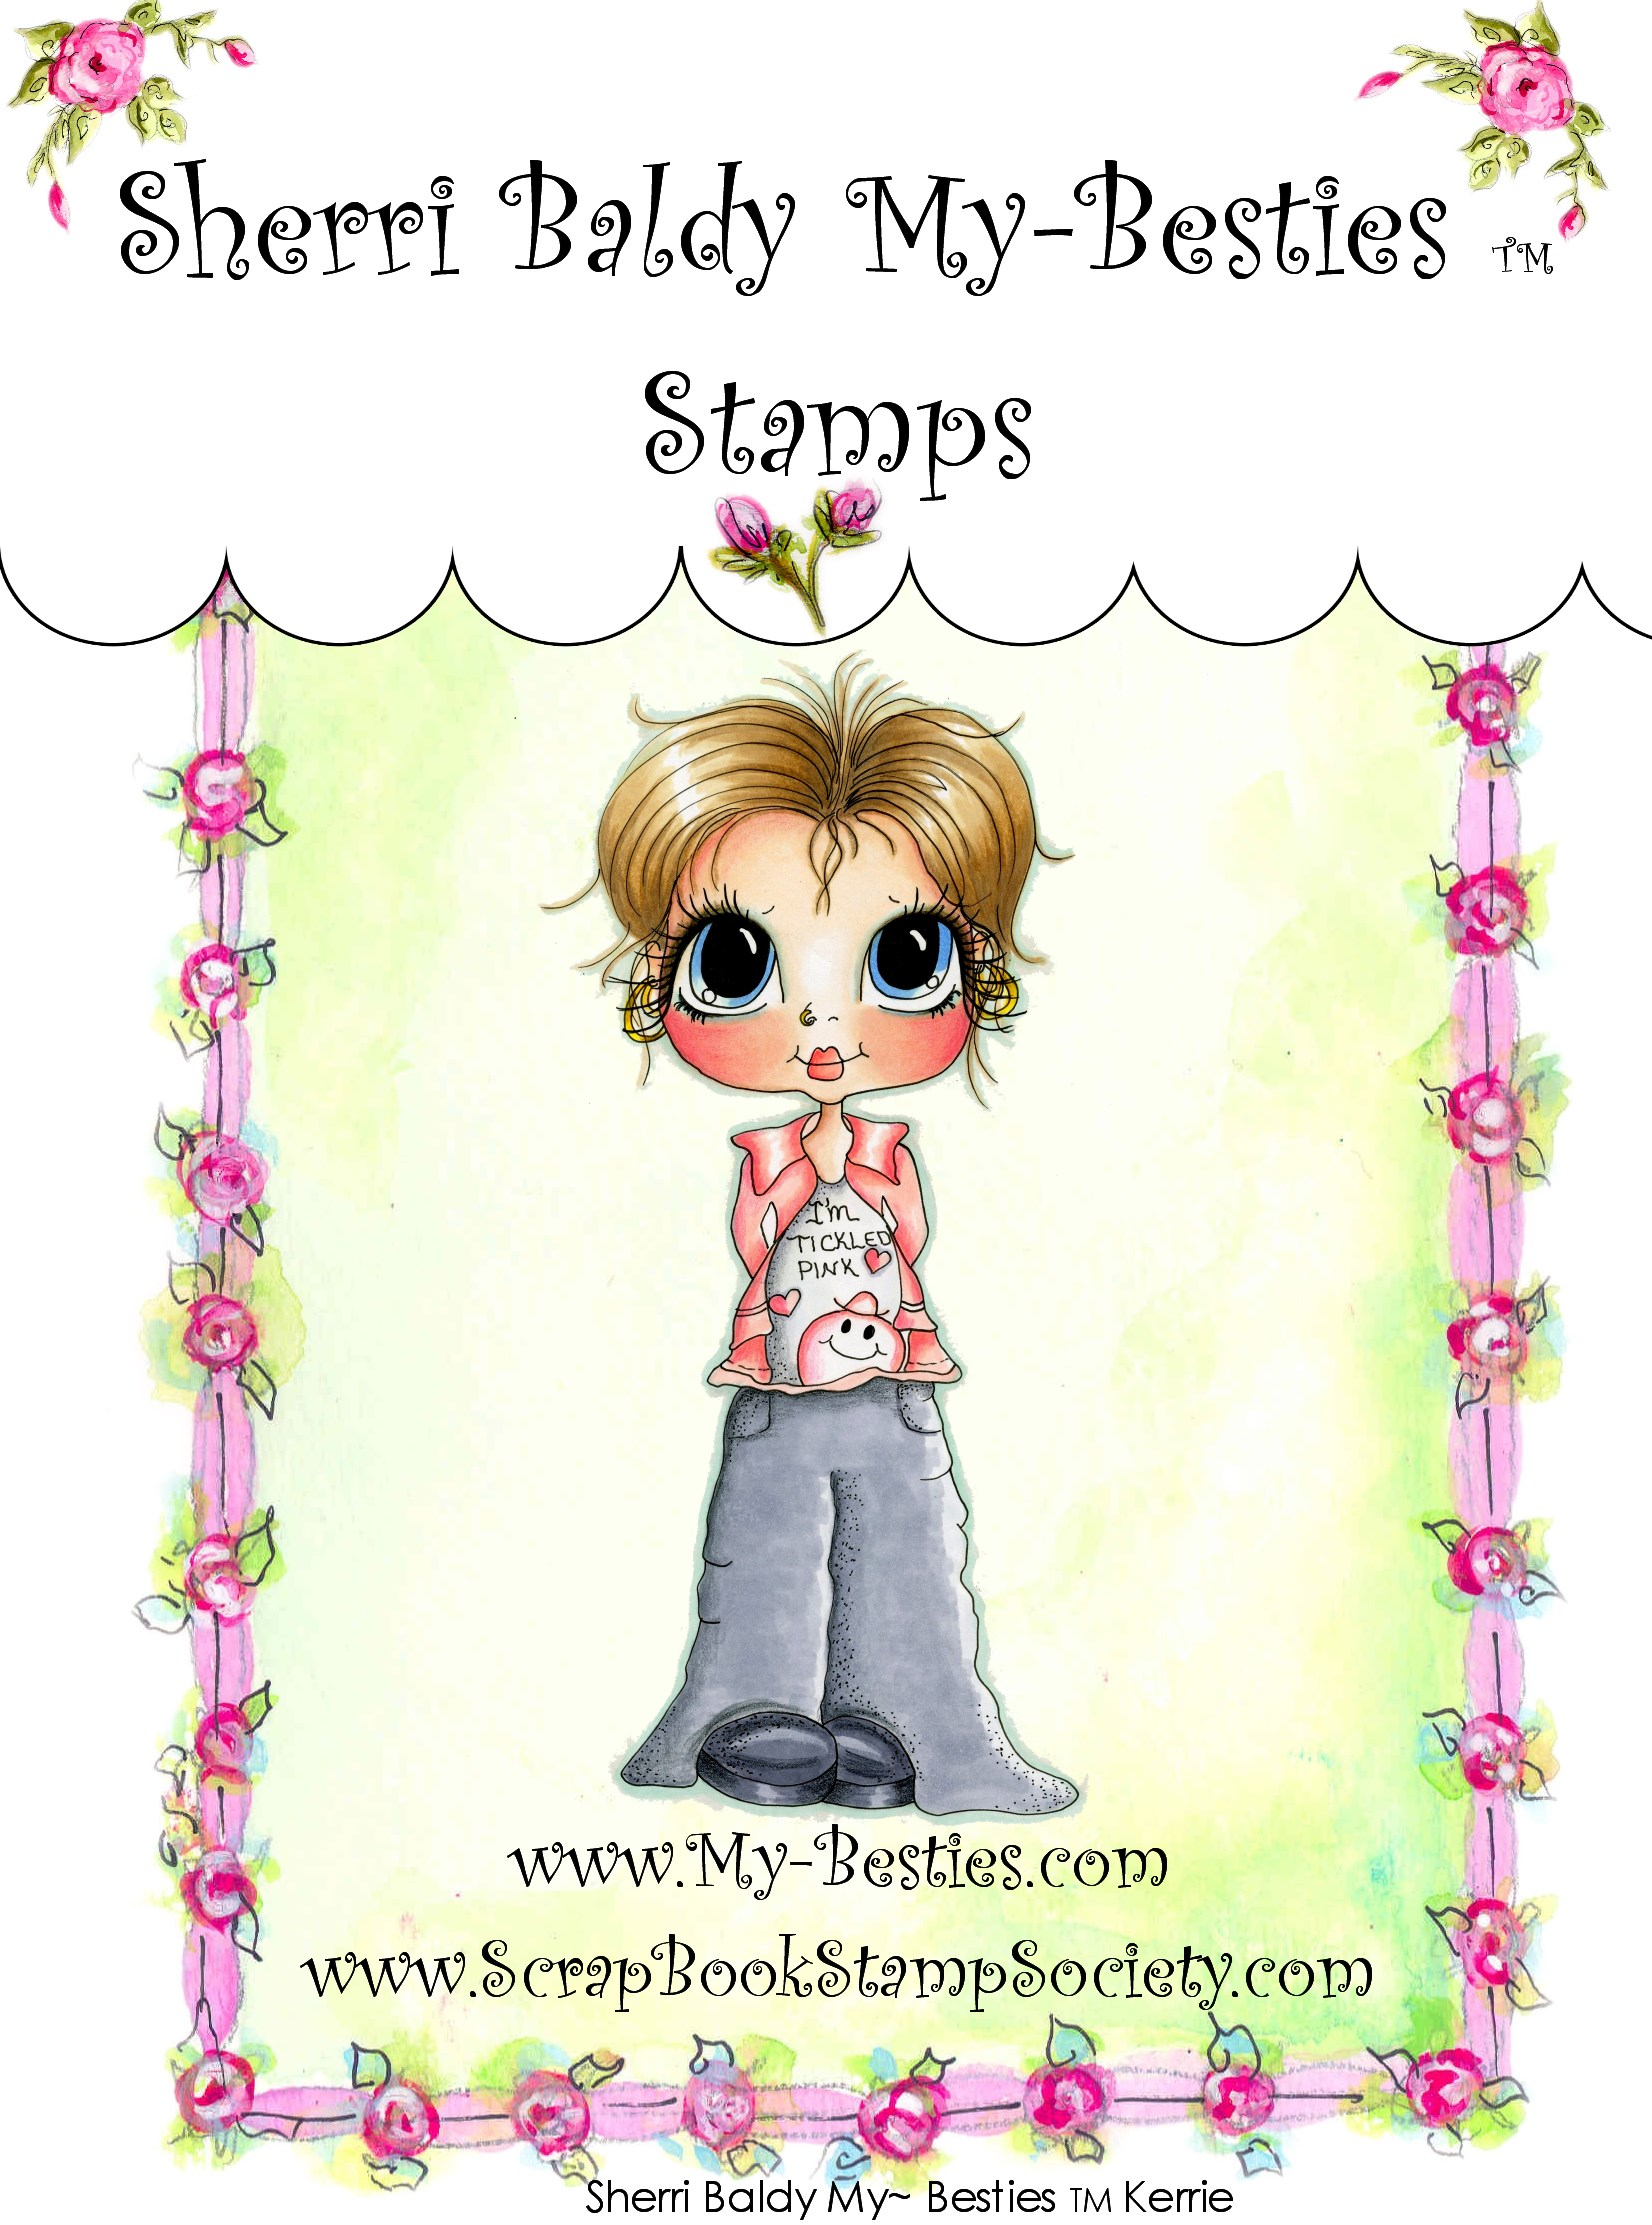 Clear Rubber Stamp Kerrie-Sherri Baldy, my besties, digi stamps, rubber stamps, big eyed, dolls, Messy Bessy,